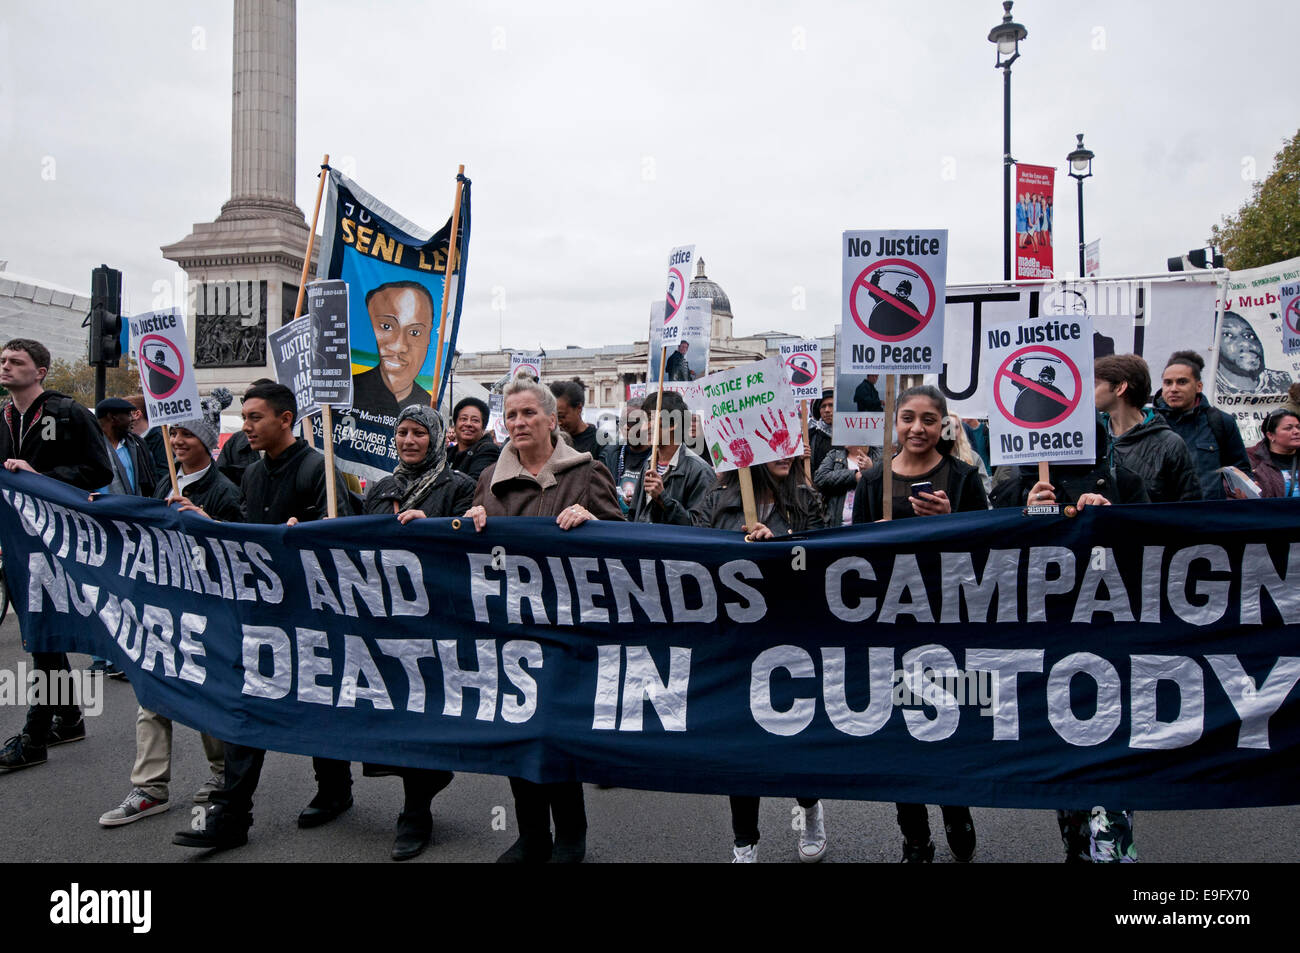 Annual Rally and campaign against Deaths in Custody held by United Families and Friends - Stock Image